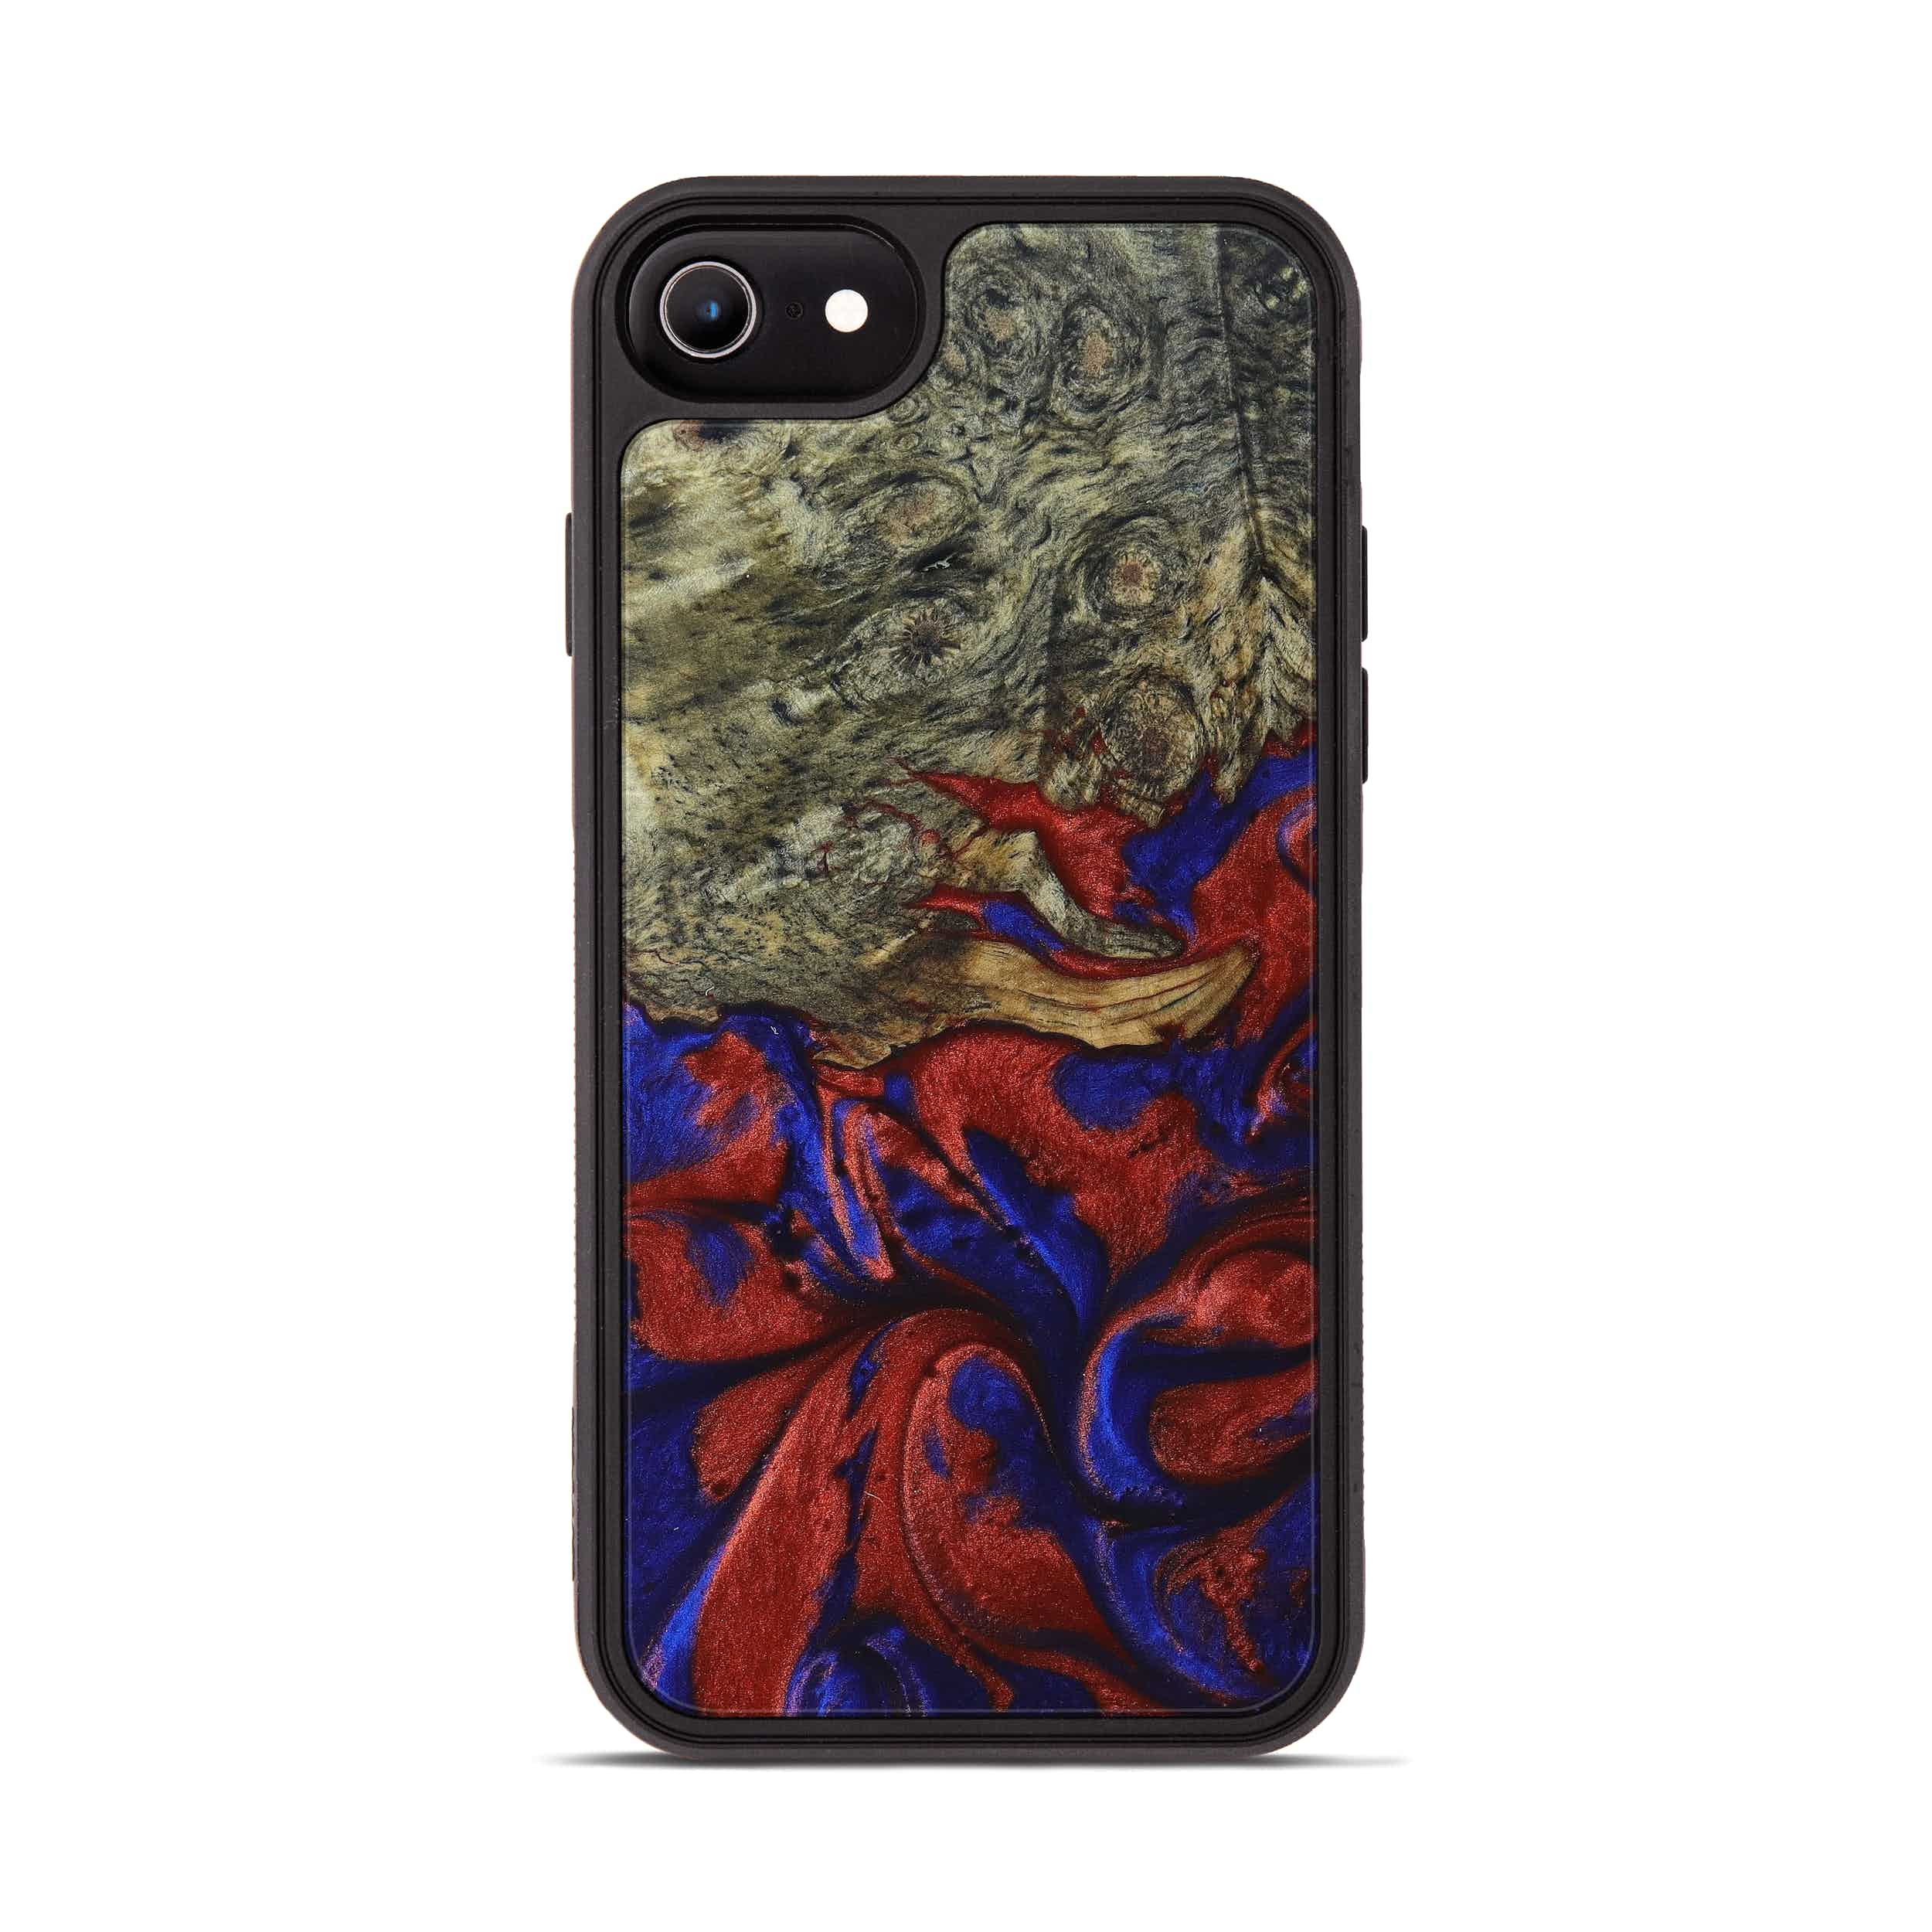 iPhone 6s Wood+Resin Phone Case - Spence (Blue & Red, 395974)